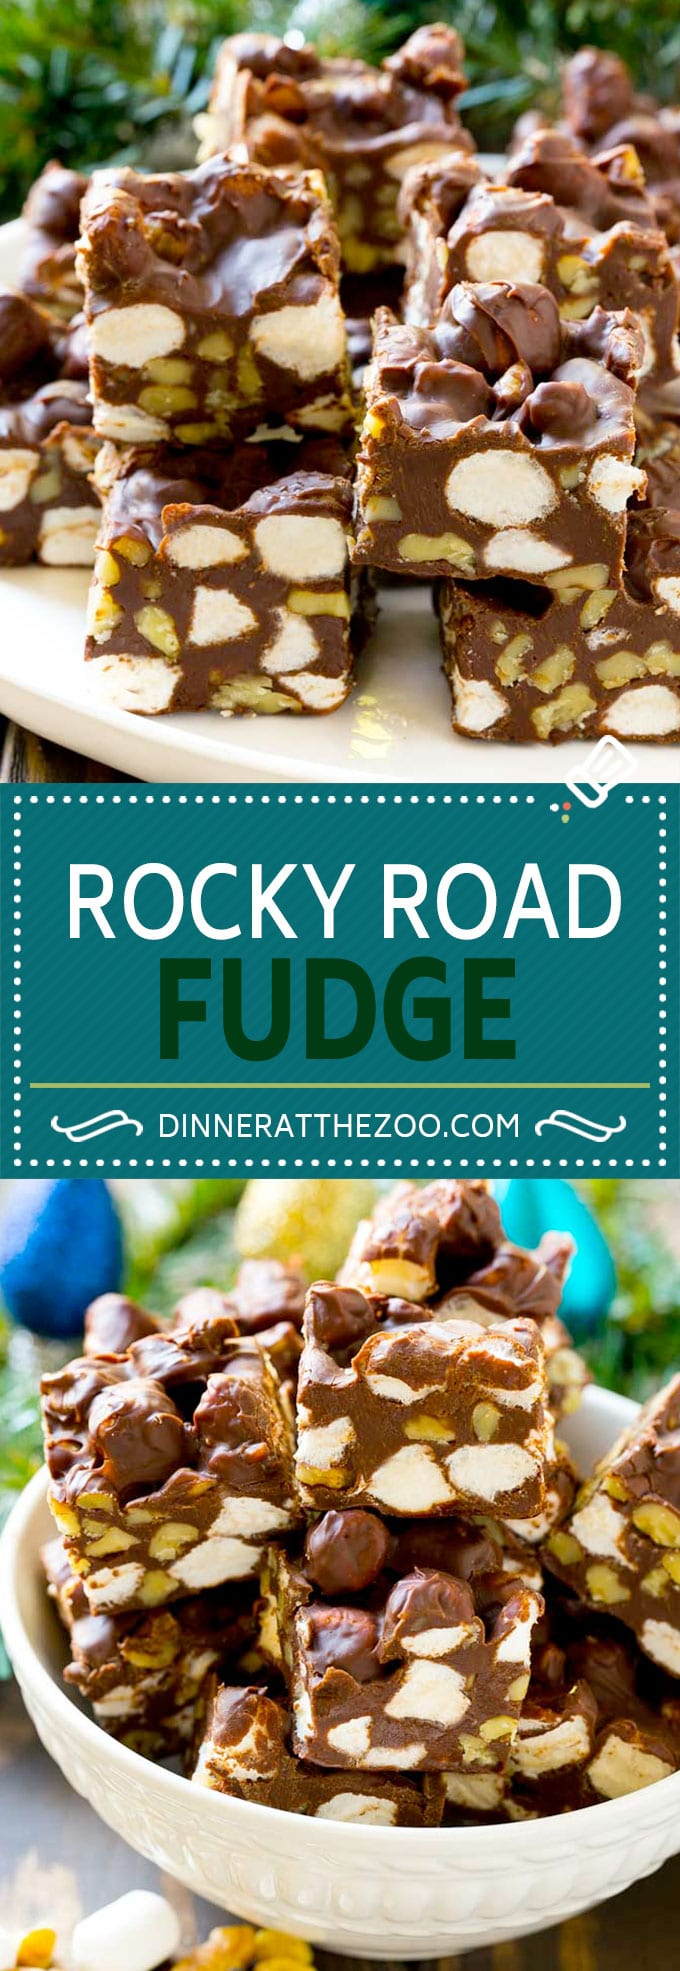 Rocky Road Fudge | Chocolate Marshmallow Fudge | Chocolate Nut Fudge | Microwave Fudge